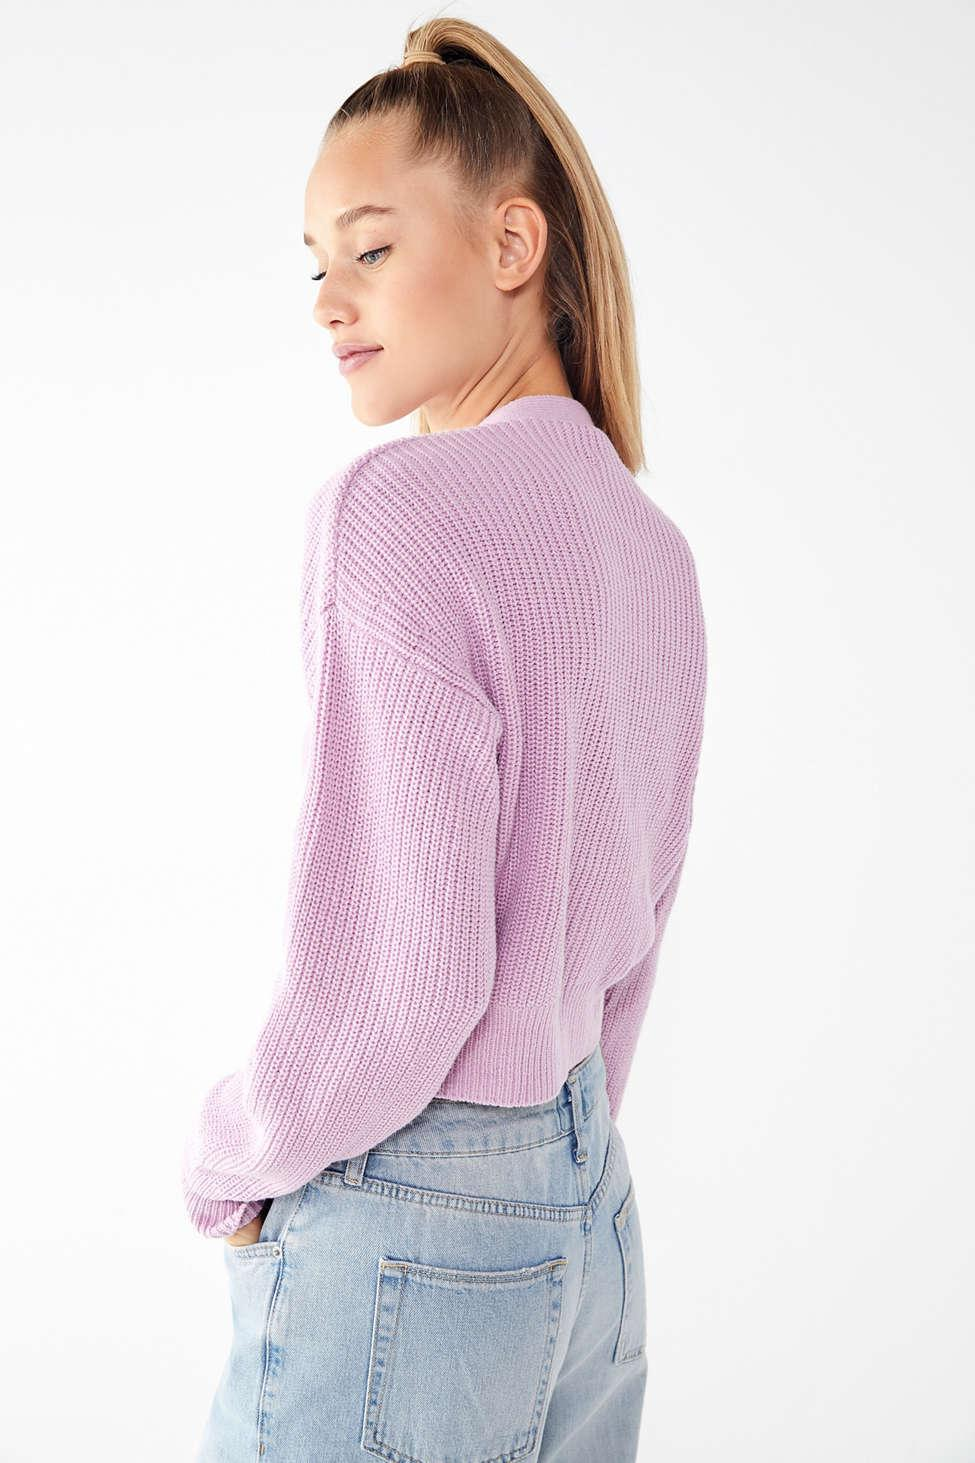 2957a3e5672c2 Lyst - Urban Outfitters Uo Kai Cropped Cardigan in Purple